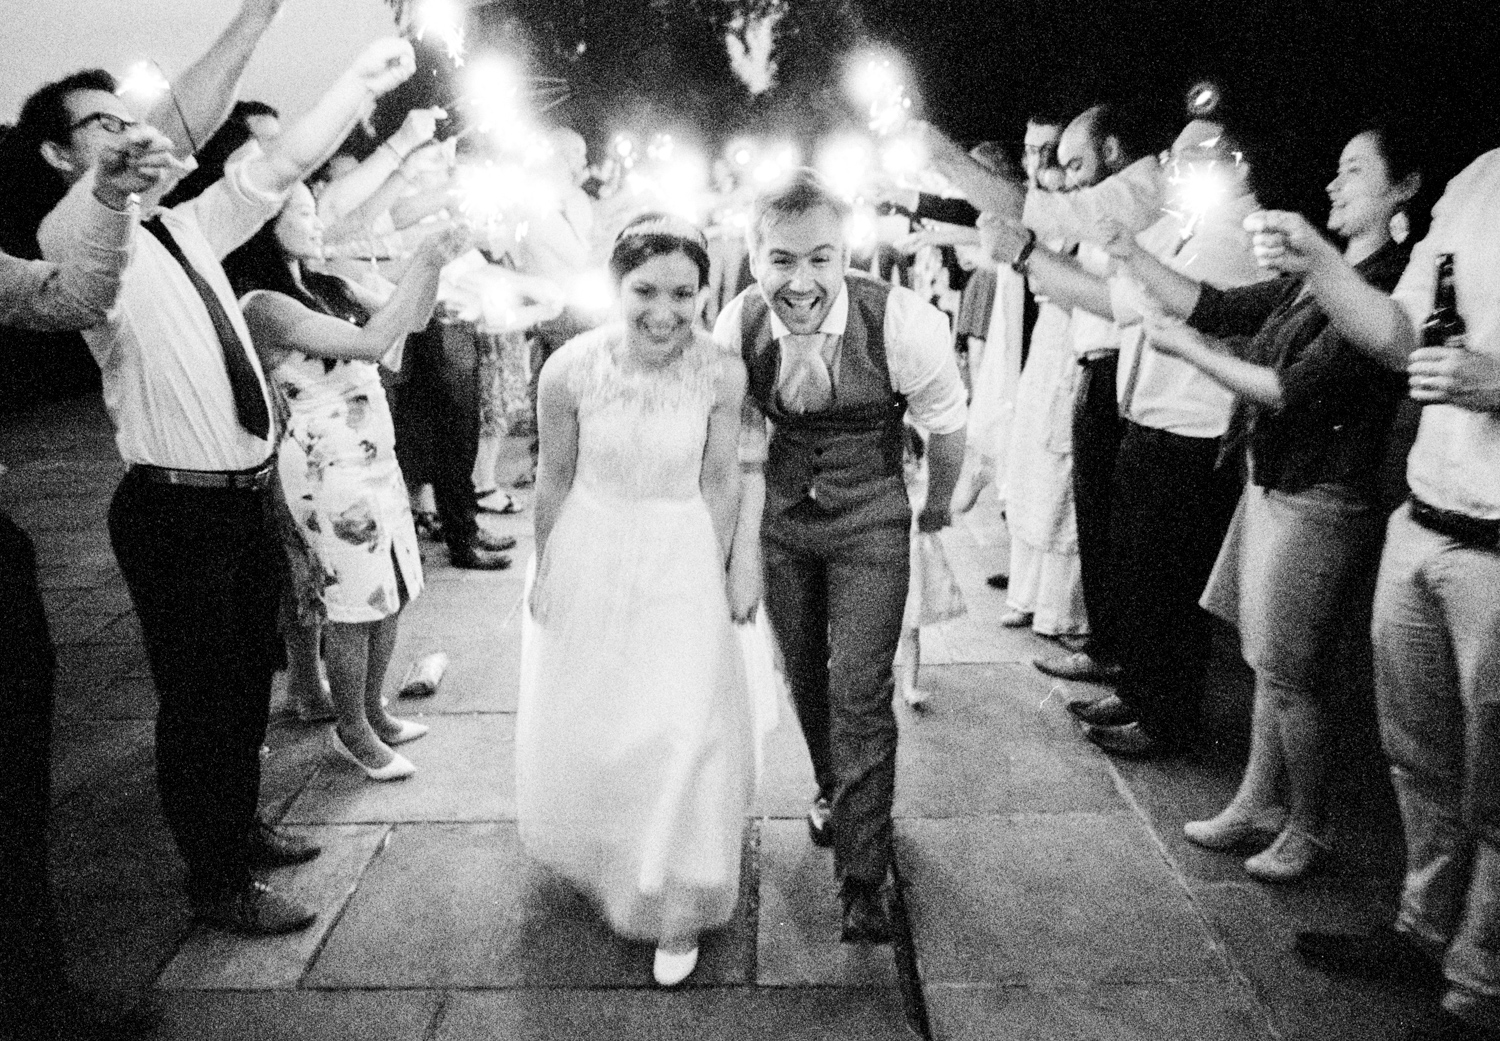 Ilford Delta 3200 For Weddings-29.jpg